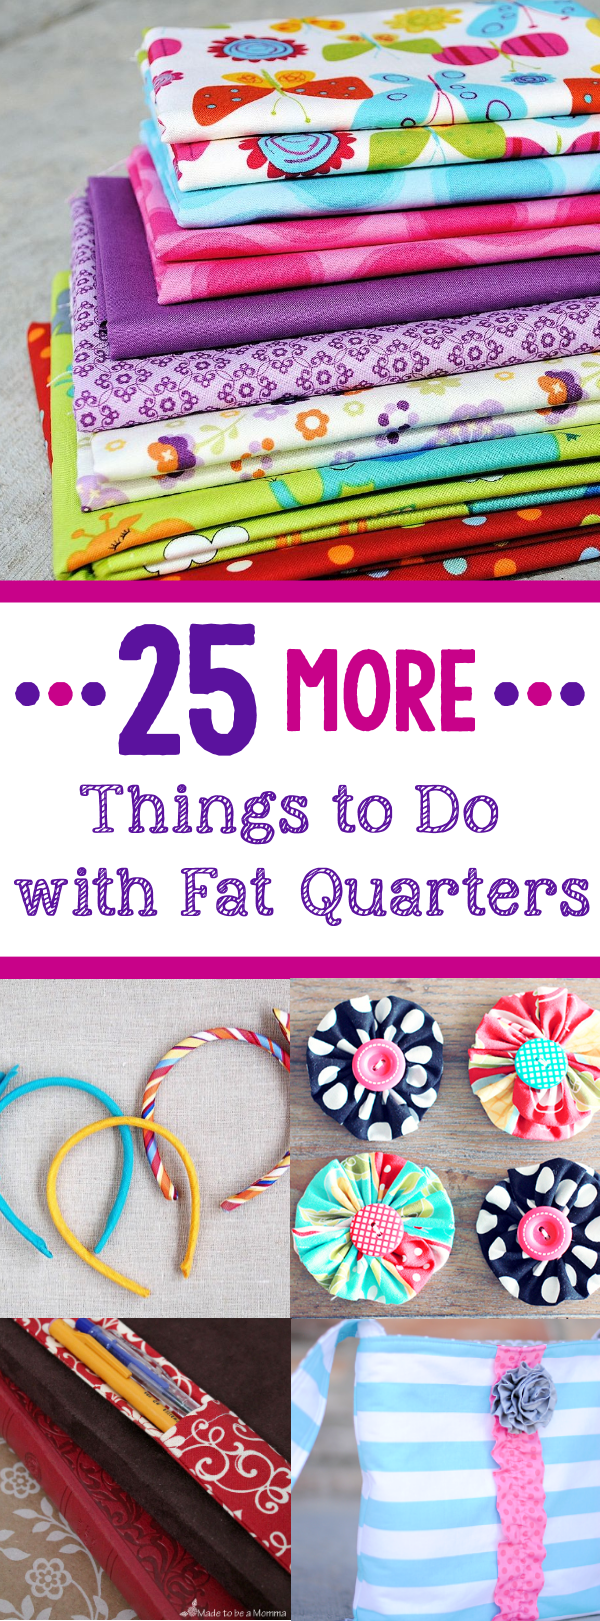 Tons of Ideas of Things to Make with Small Amounts of Fabric Like Fat Quaters #sew #sewing #patterns #crafts